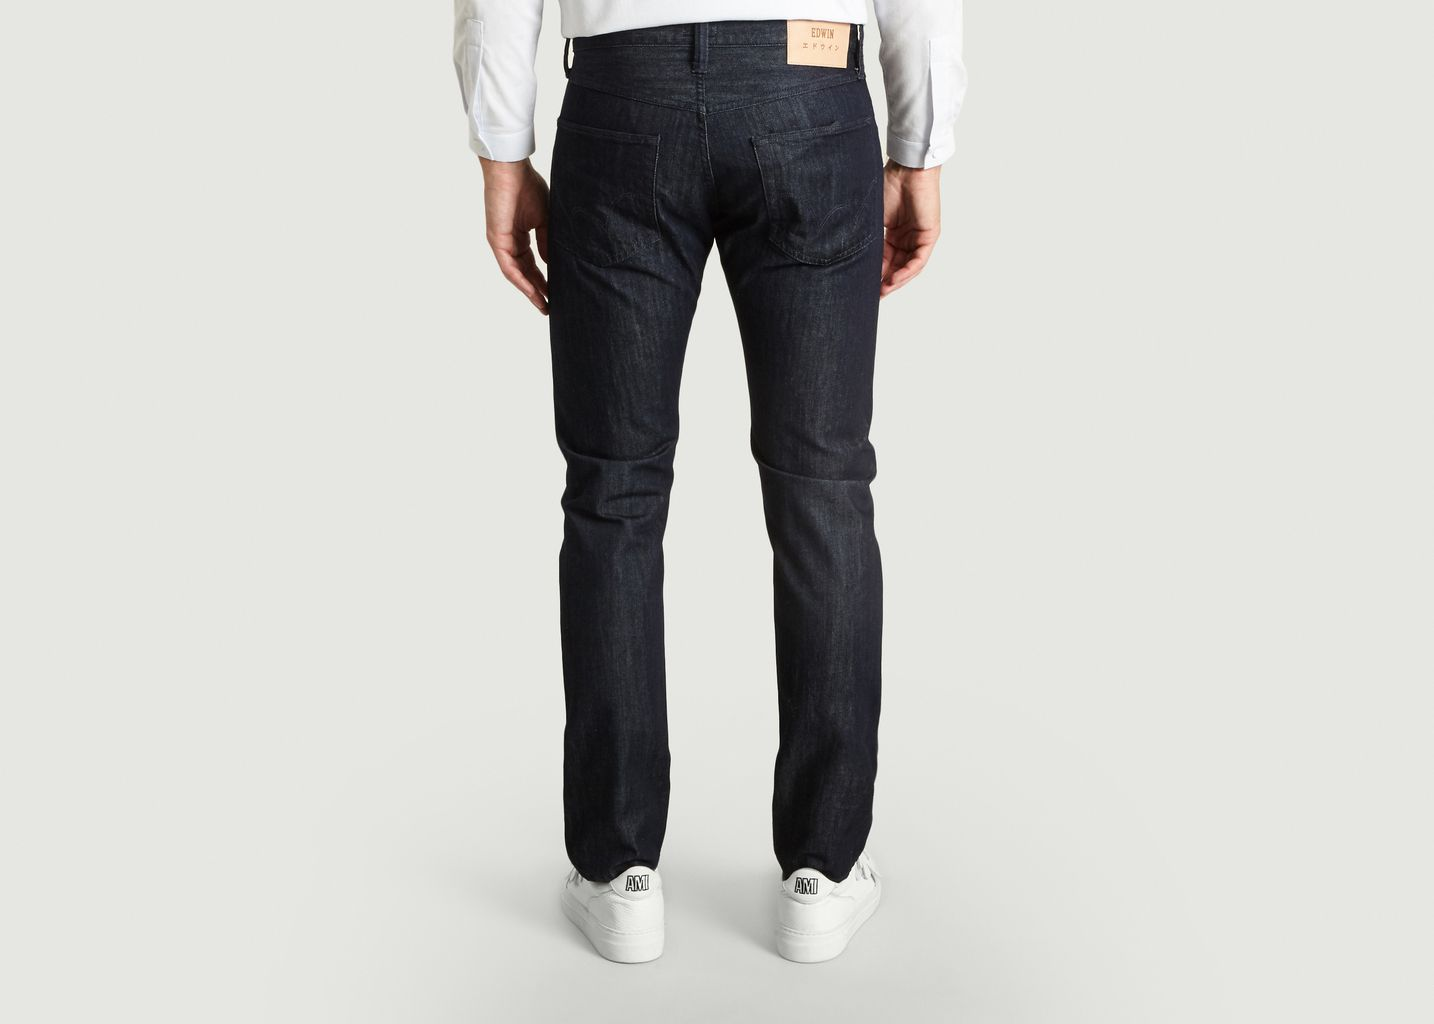 ED-55 Regular Tapered Jeans - Edwin